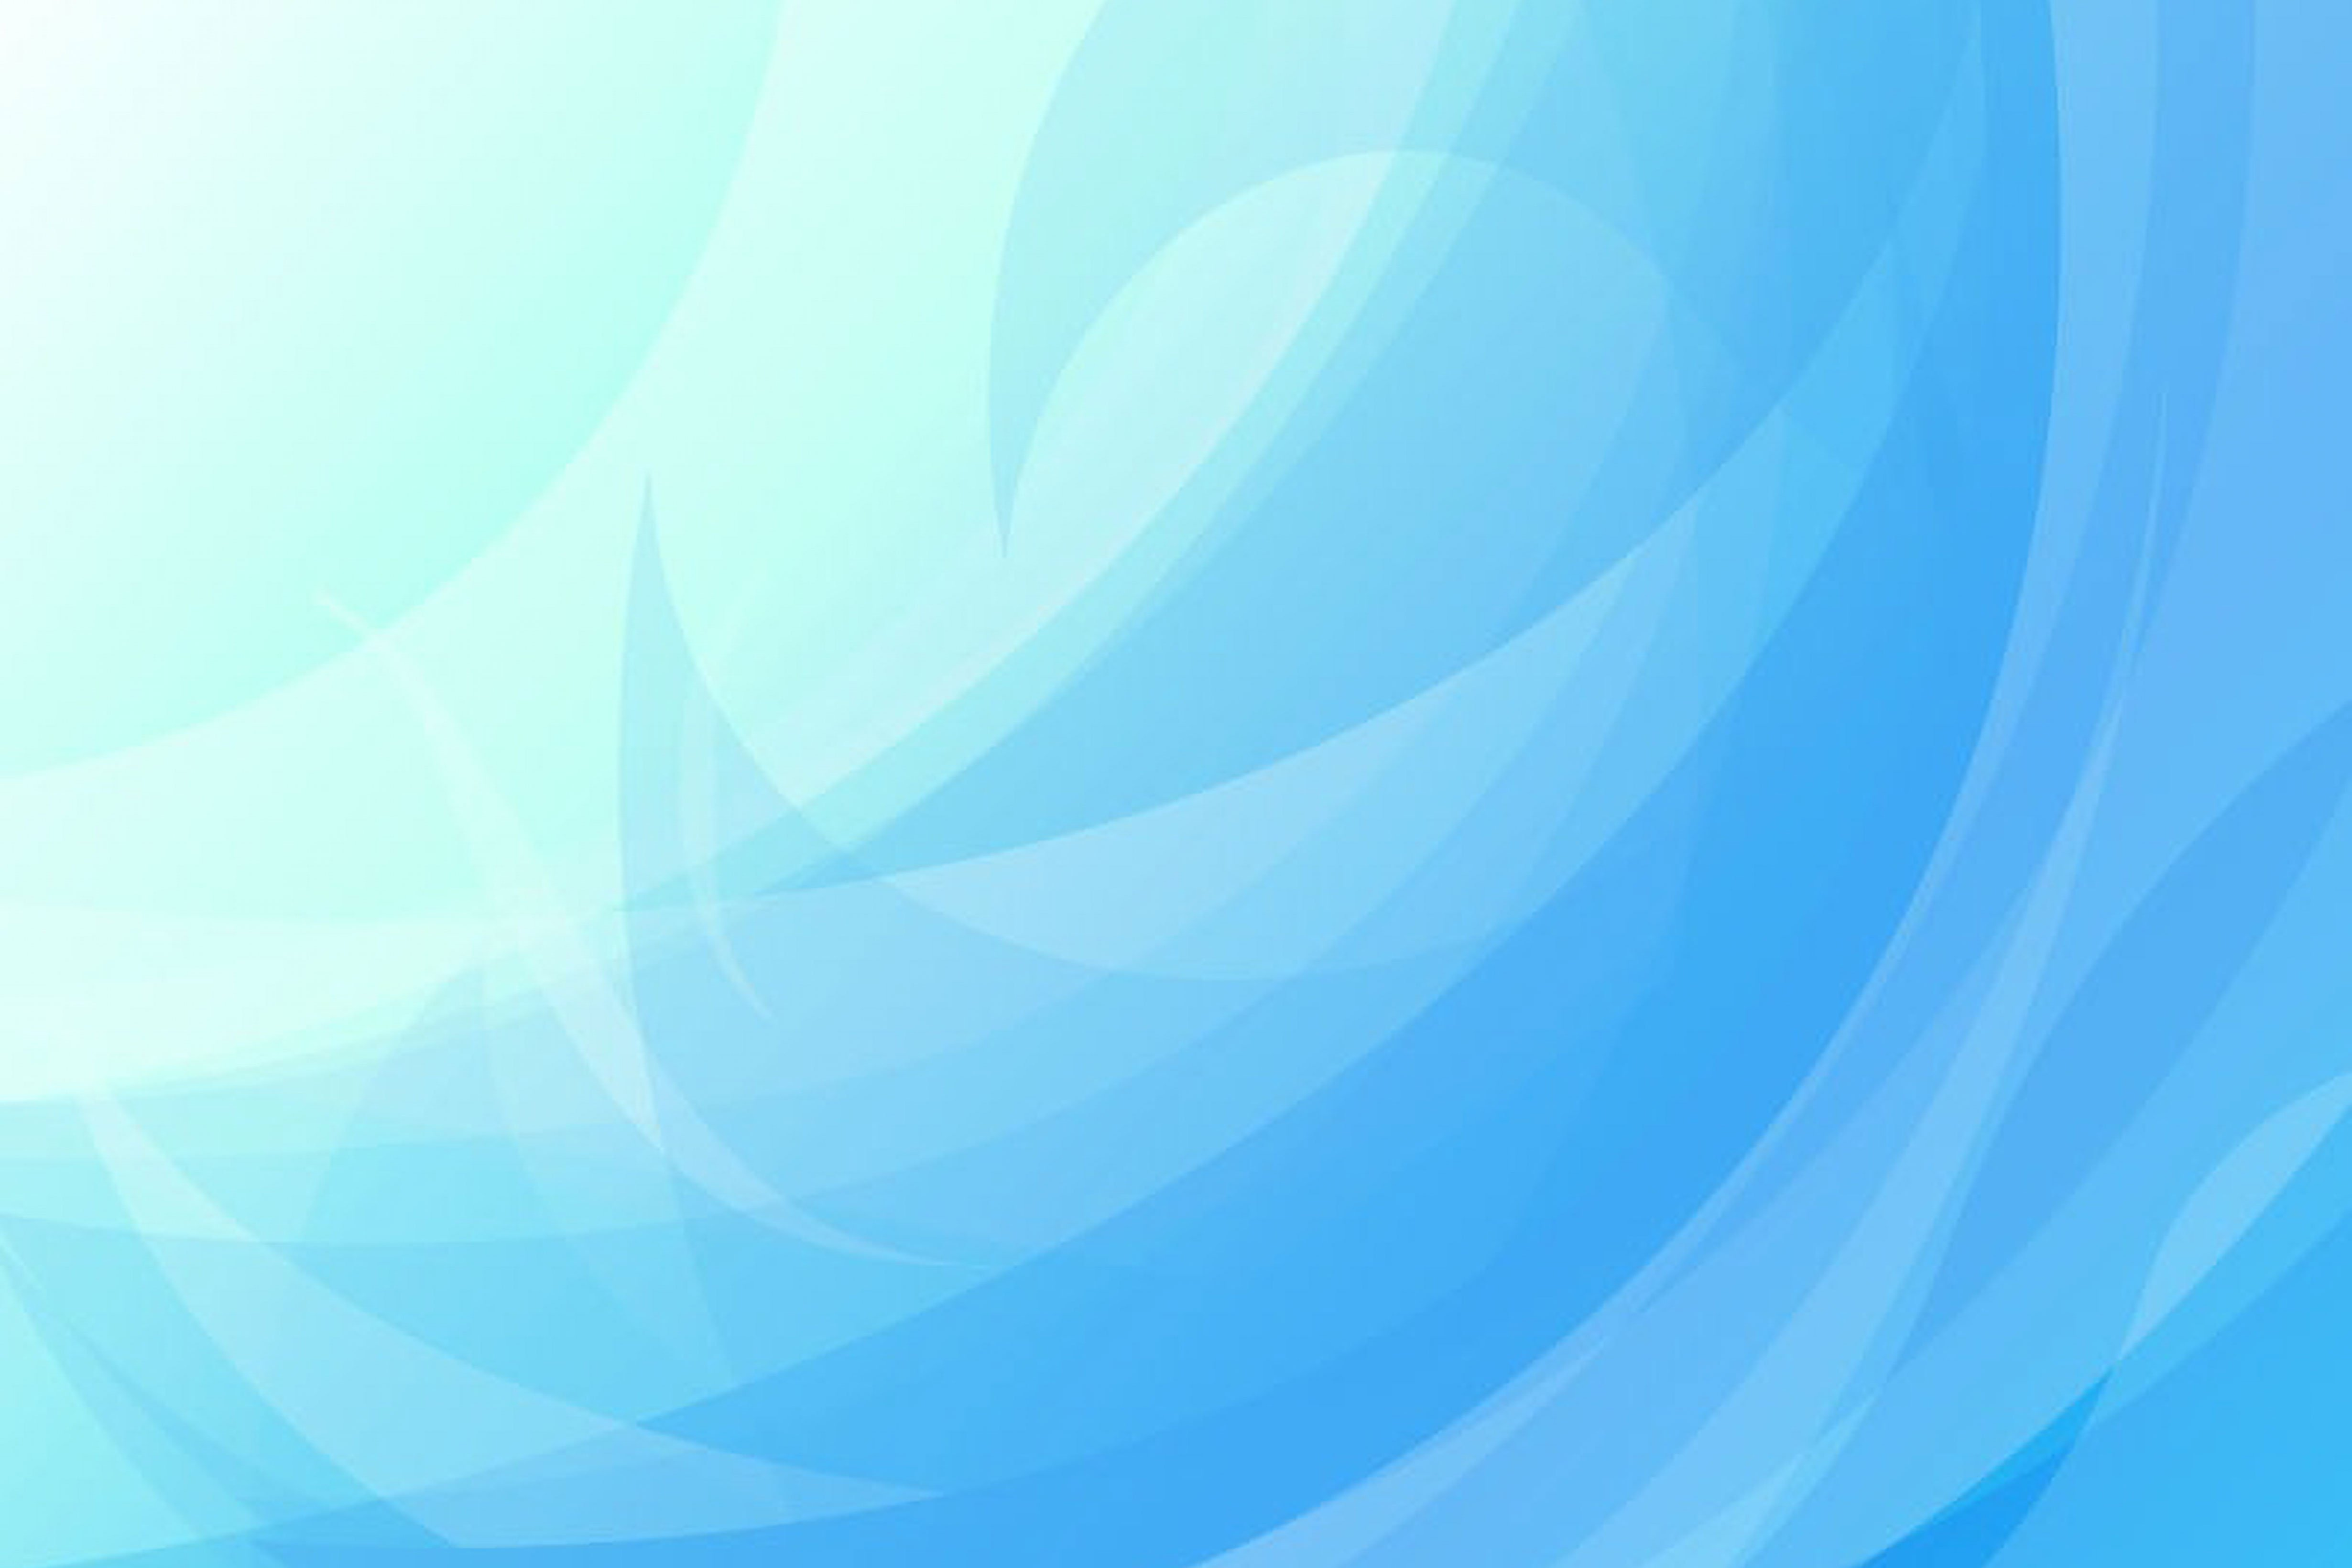 Abstract-Vector-Blue-Background-Graphic